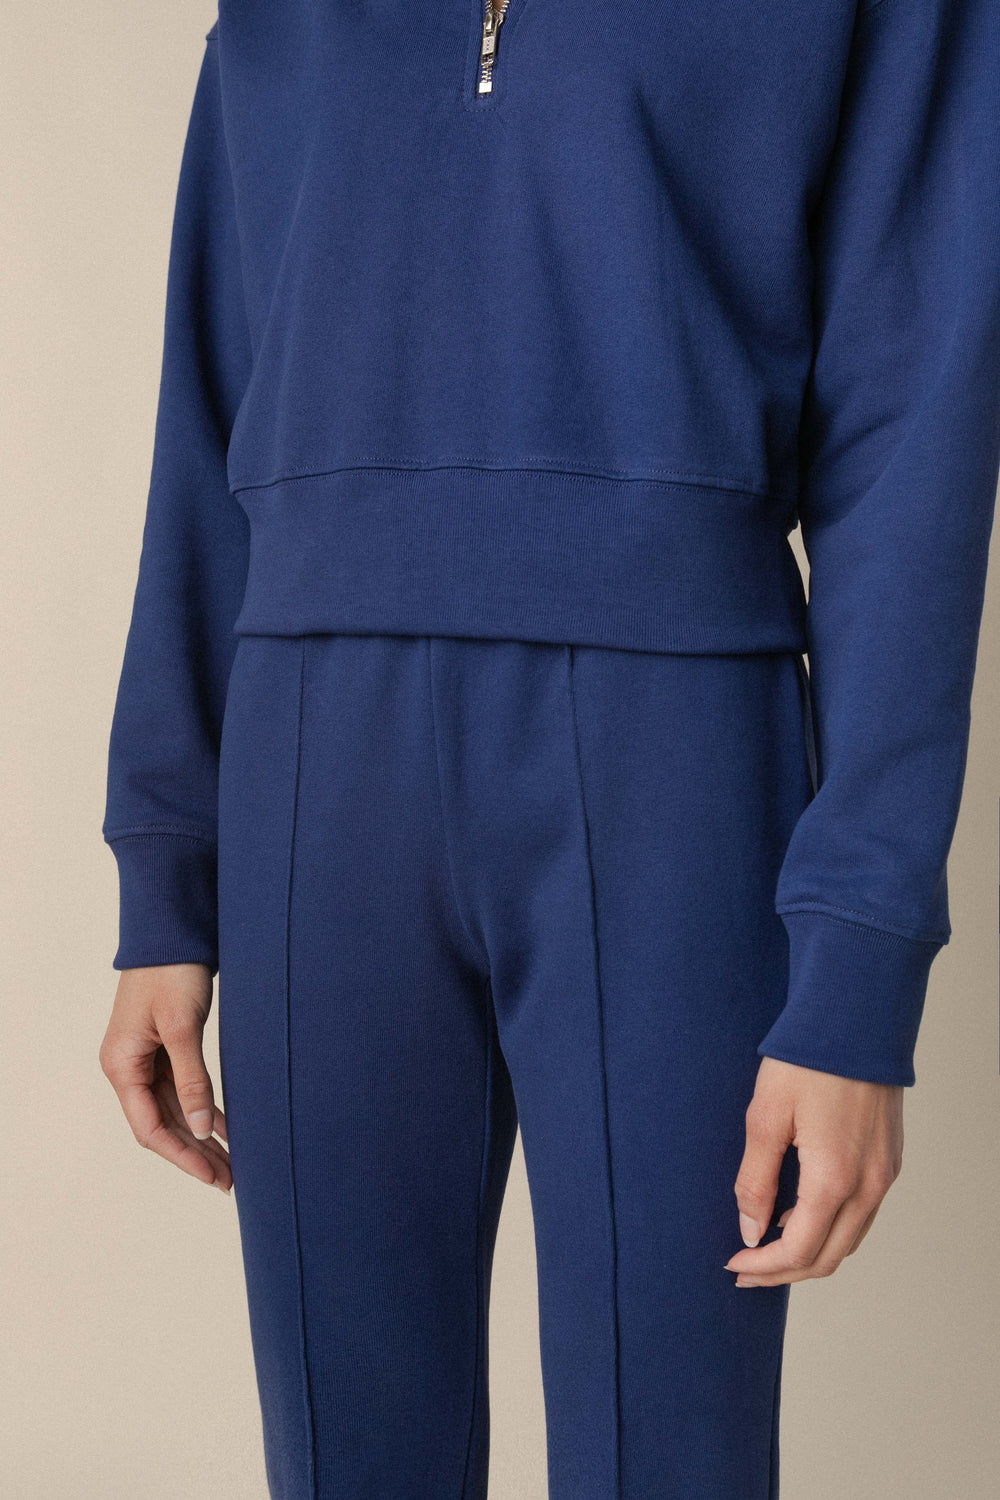 Butterhalf Pin-Tuck Sweatpants